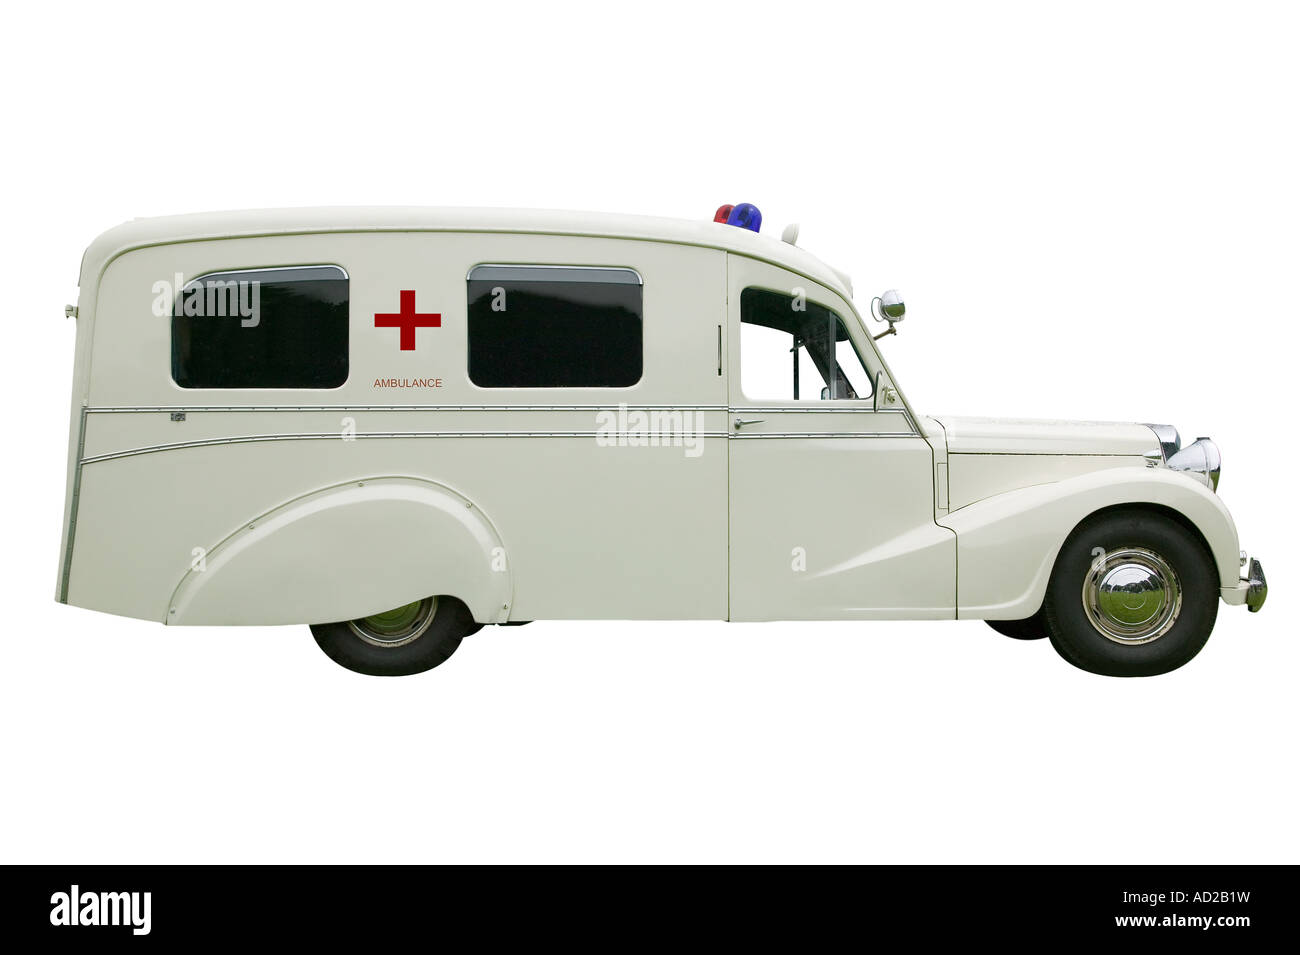 Vintage old Ambulance isolated on white With clipping path - Stock Image